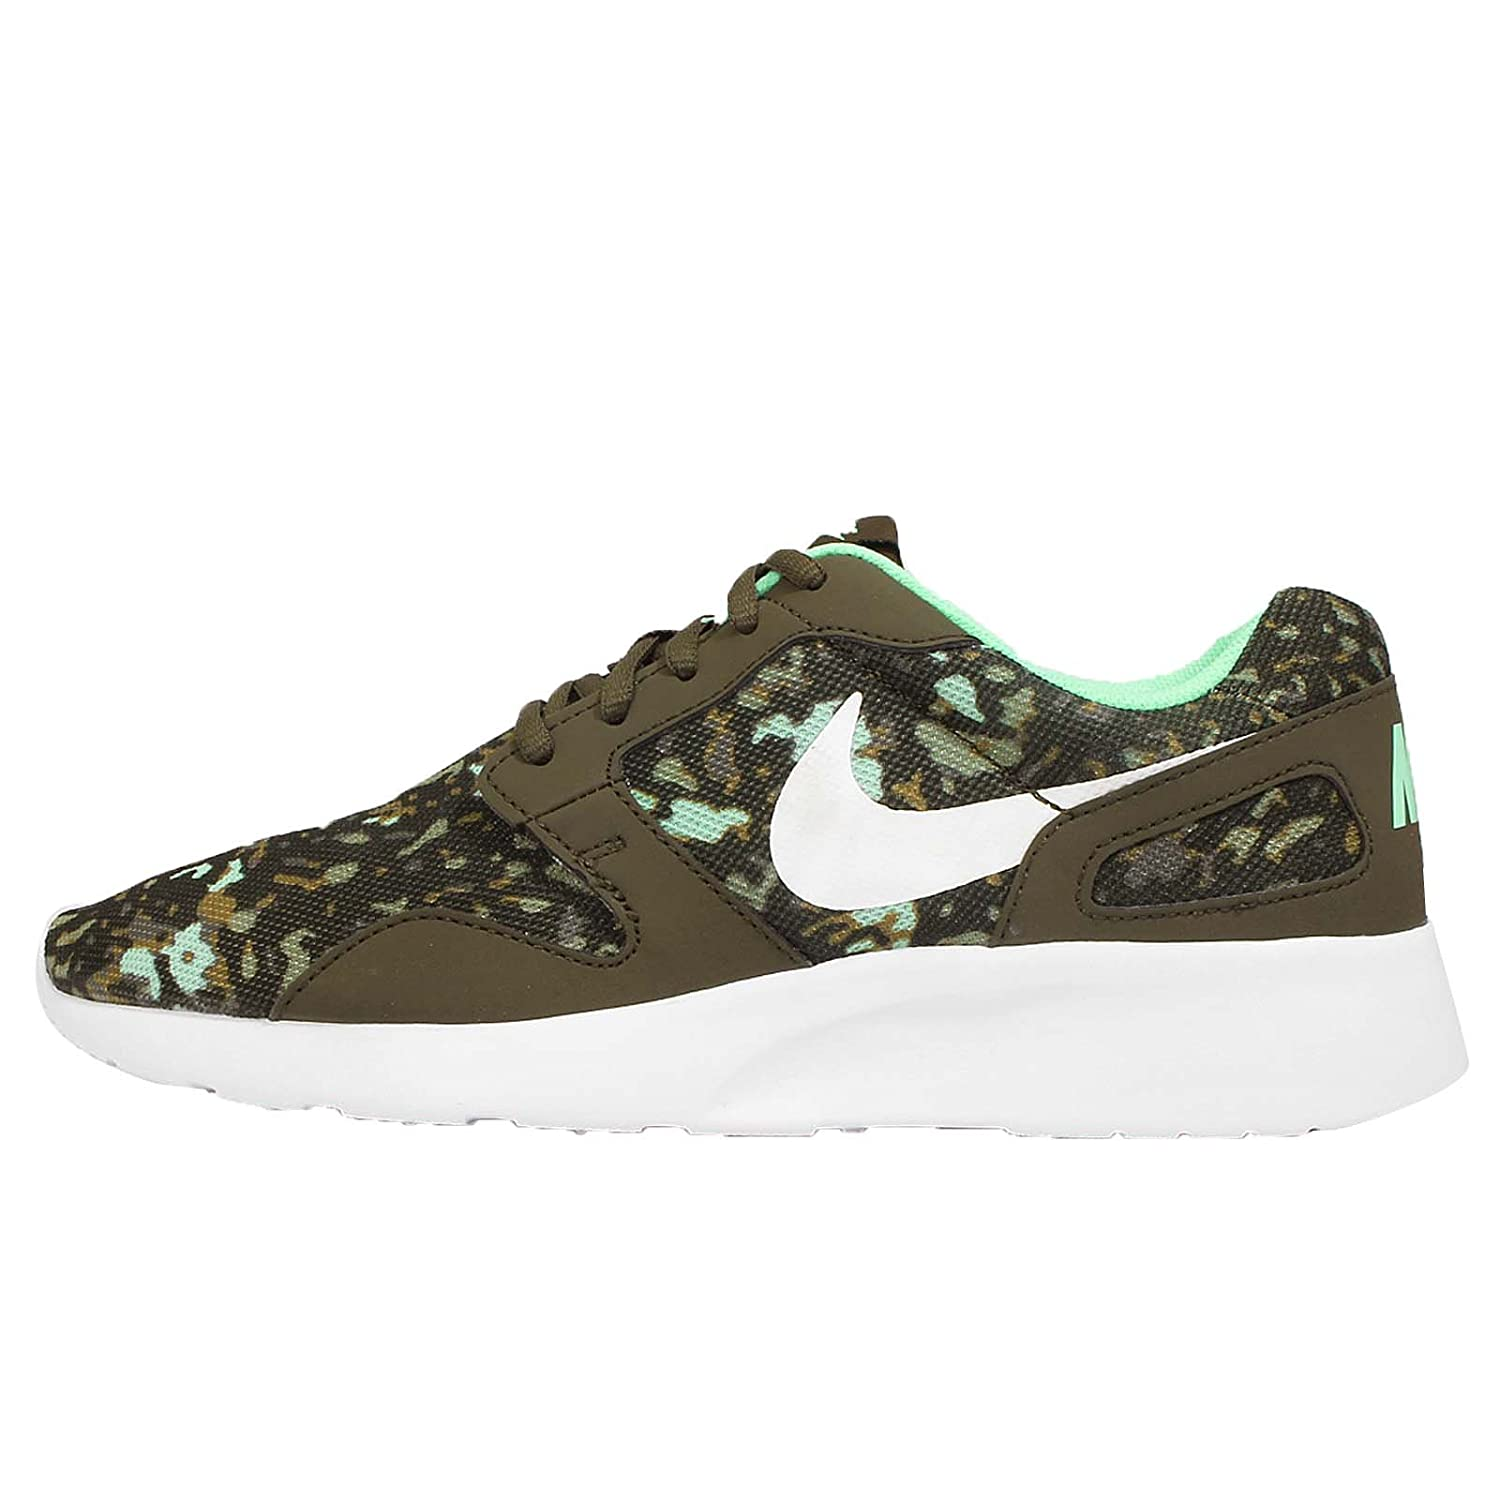 huge discount 0ecca a7e2c ... reduced nike kaishi print mens running shoes 50off 66a92 6a870